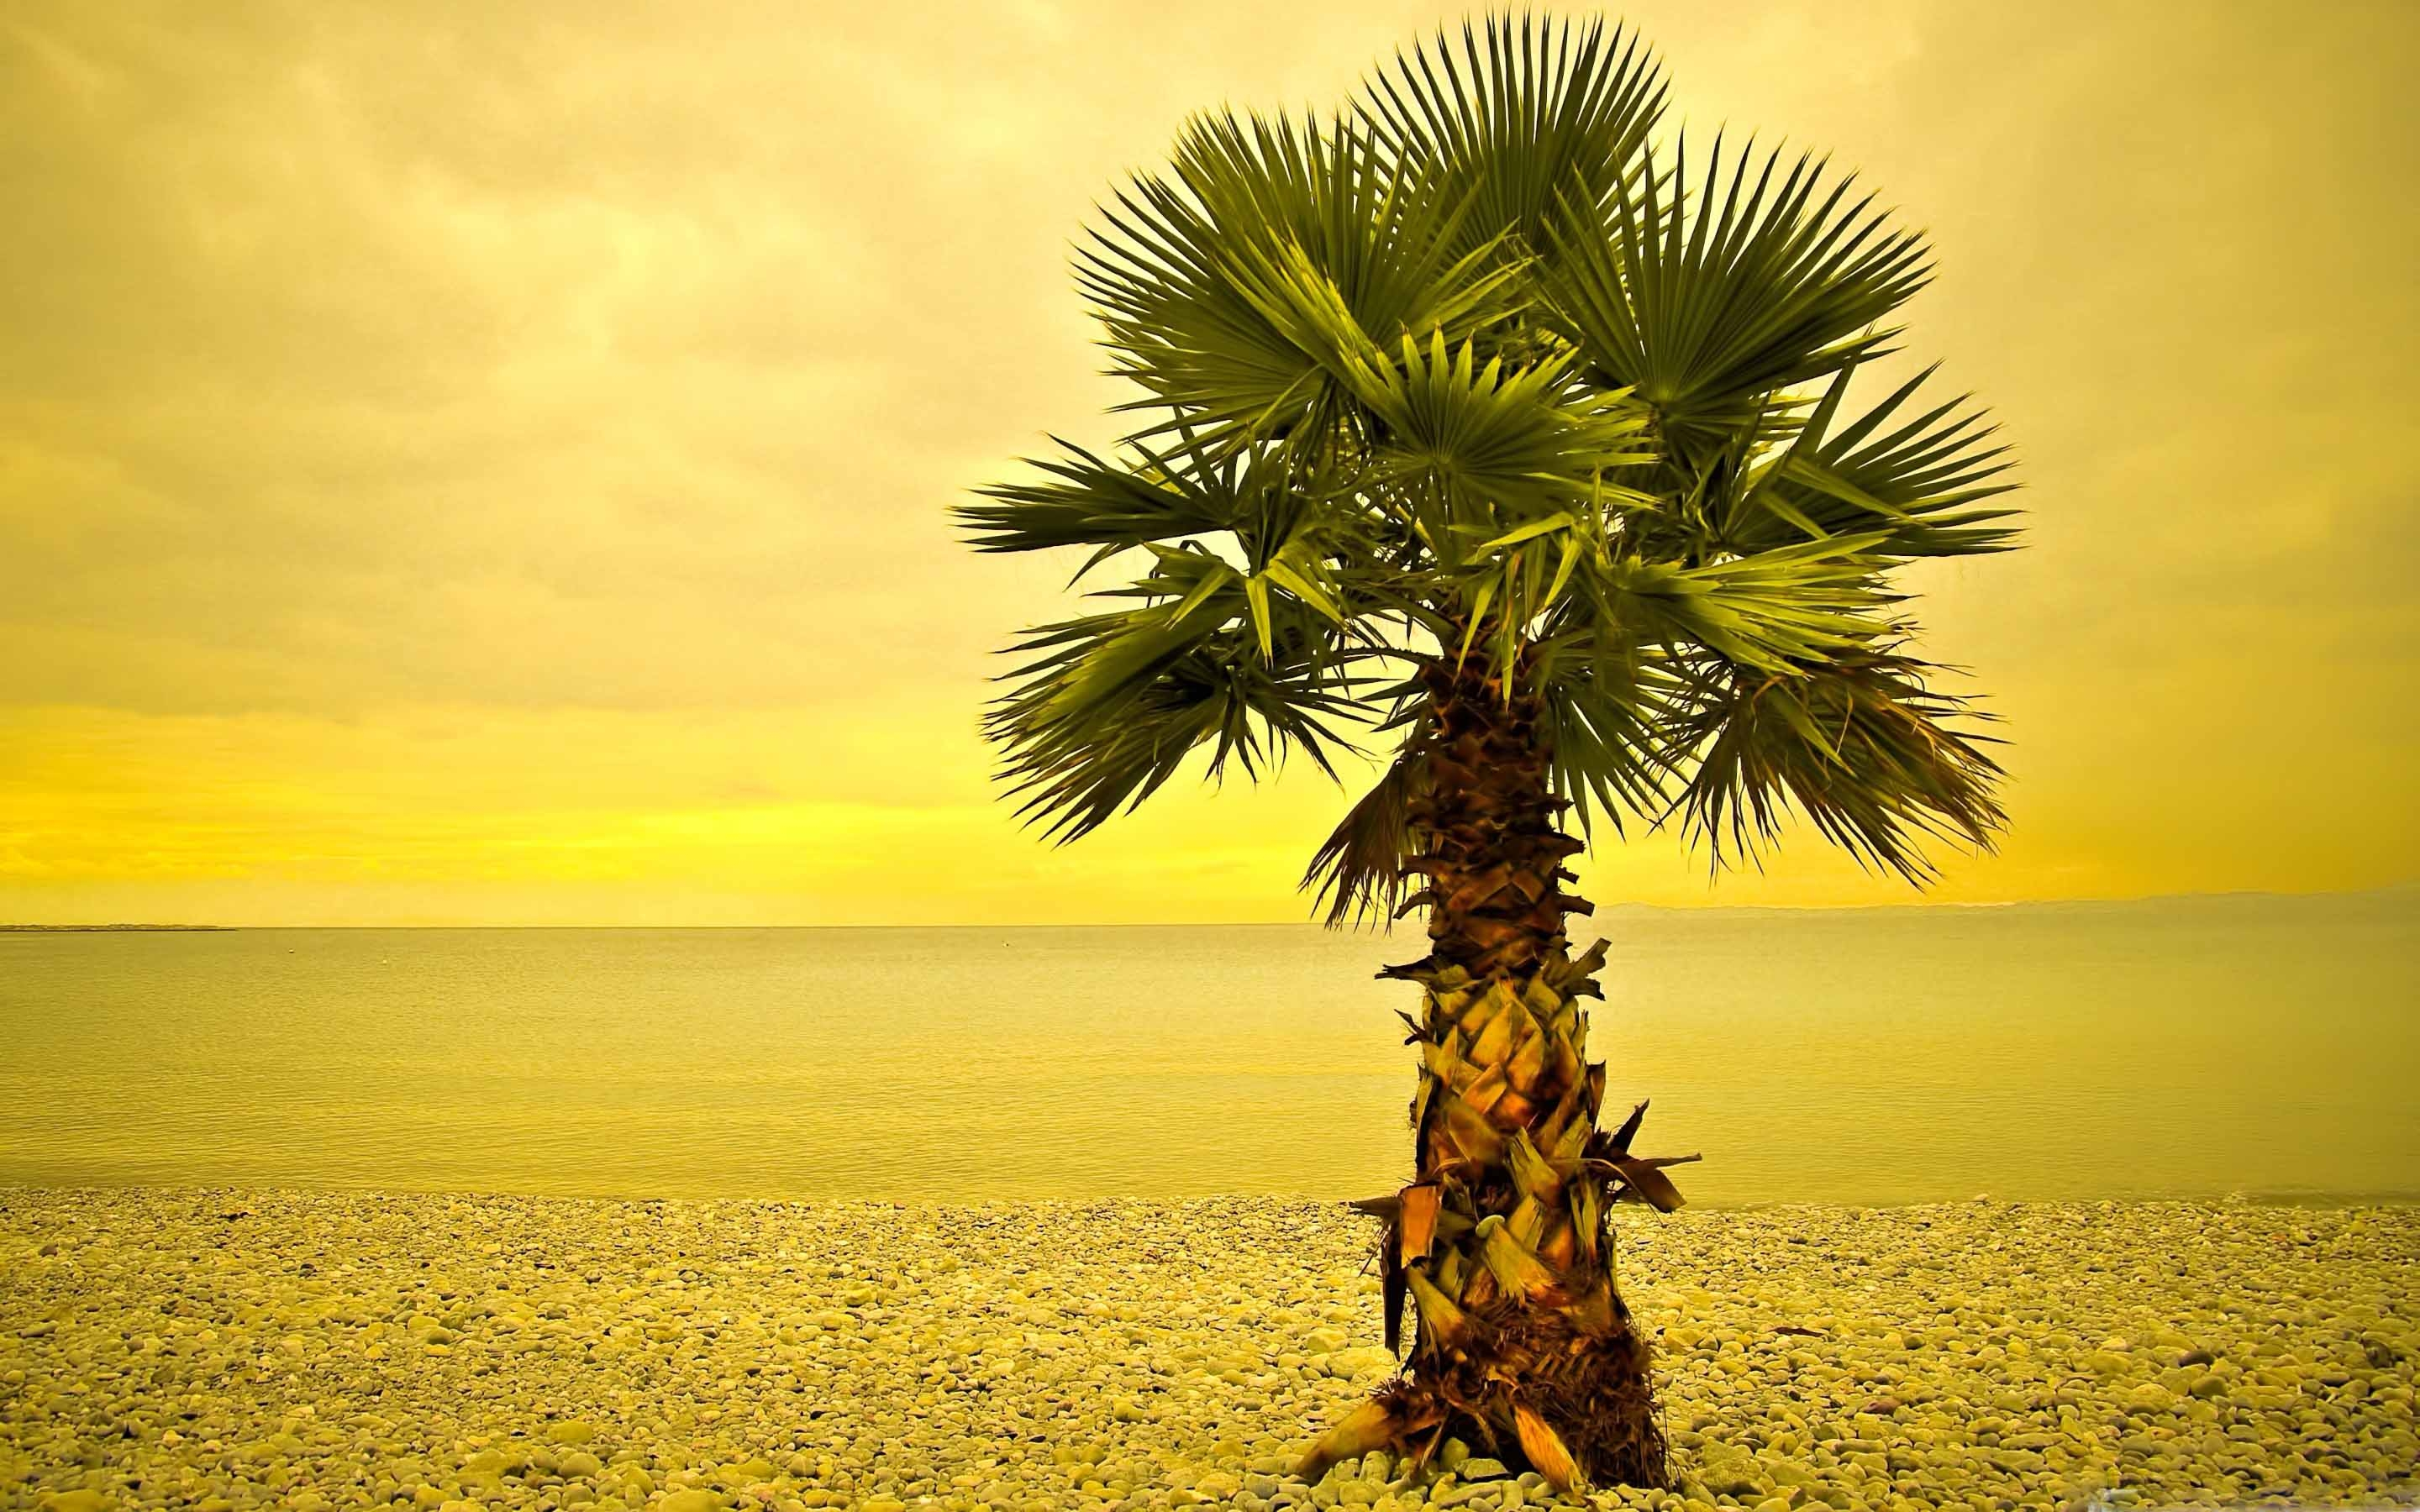 Beach Palm Tree Mac Wallpaper Download | Free Mac ...